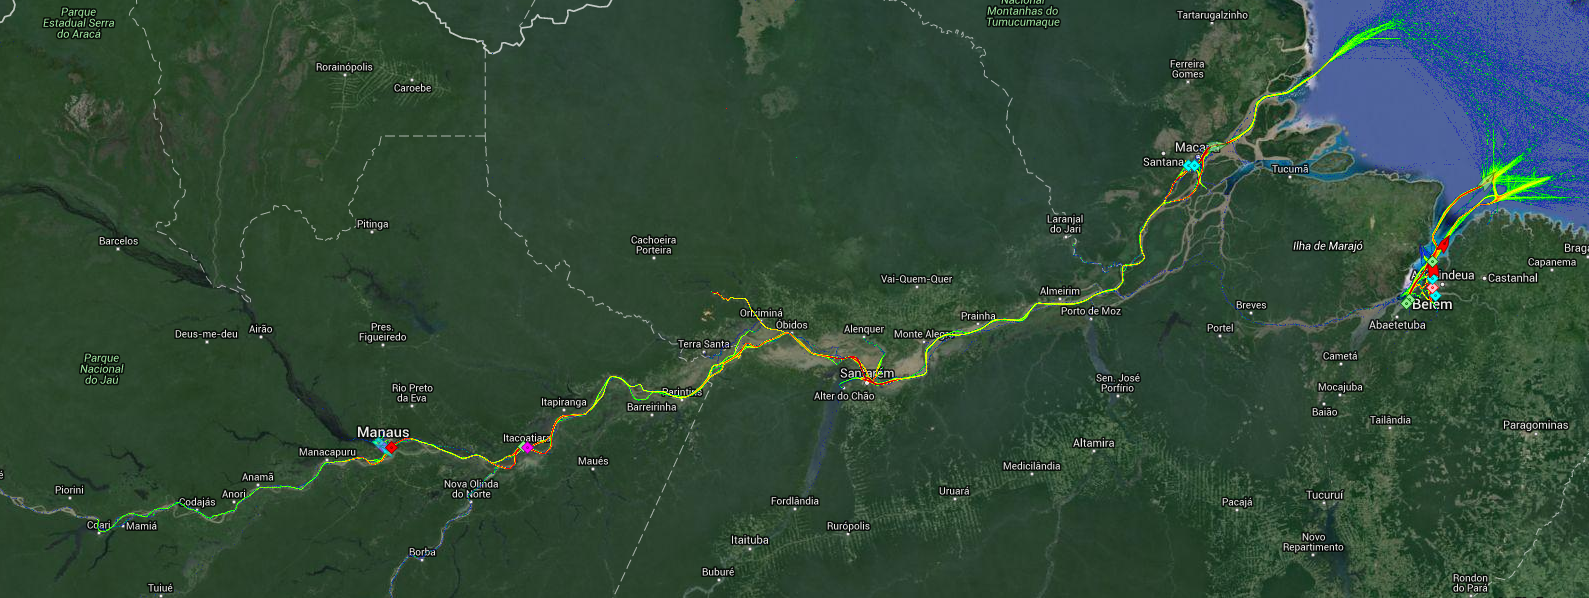 Live Marine Traffic, Density Map and Current Position of ships in AMAZON RIVER